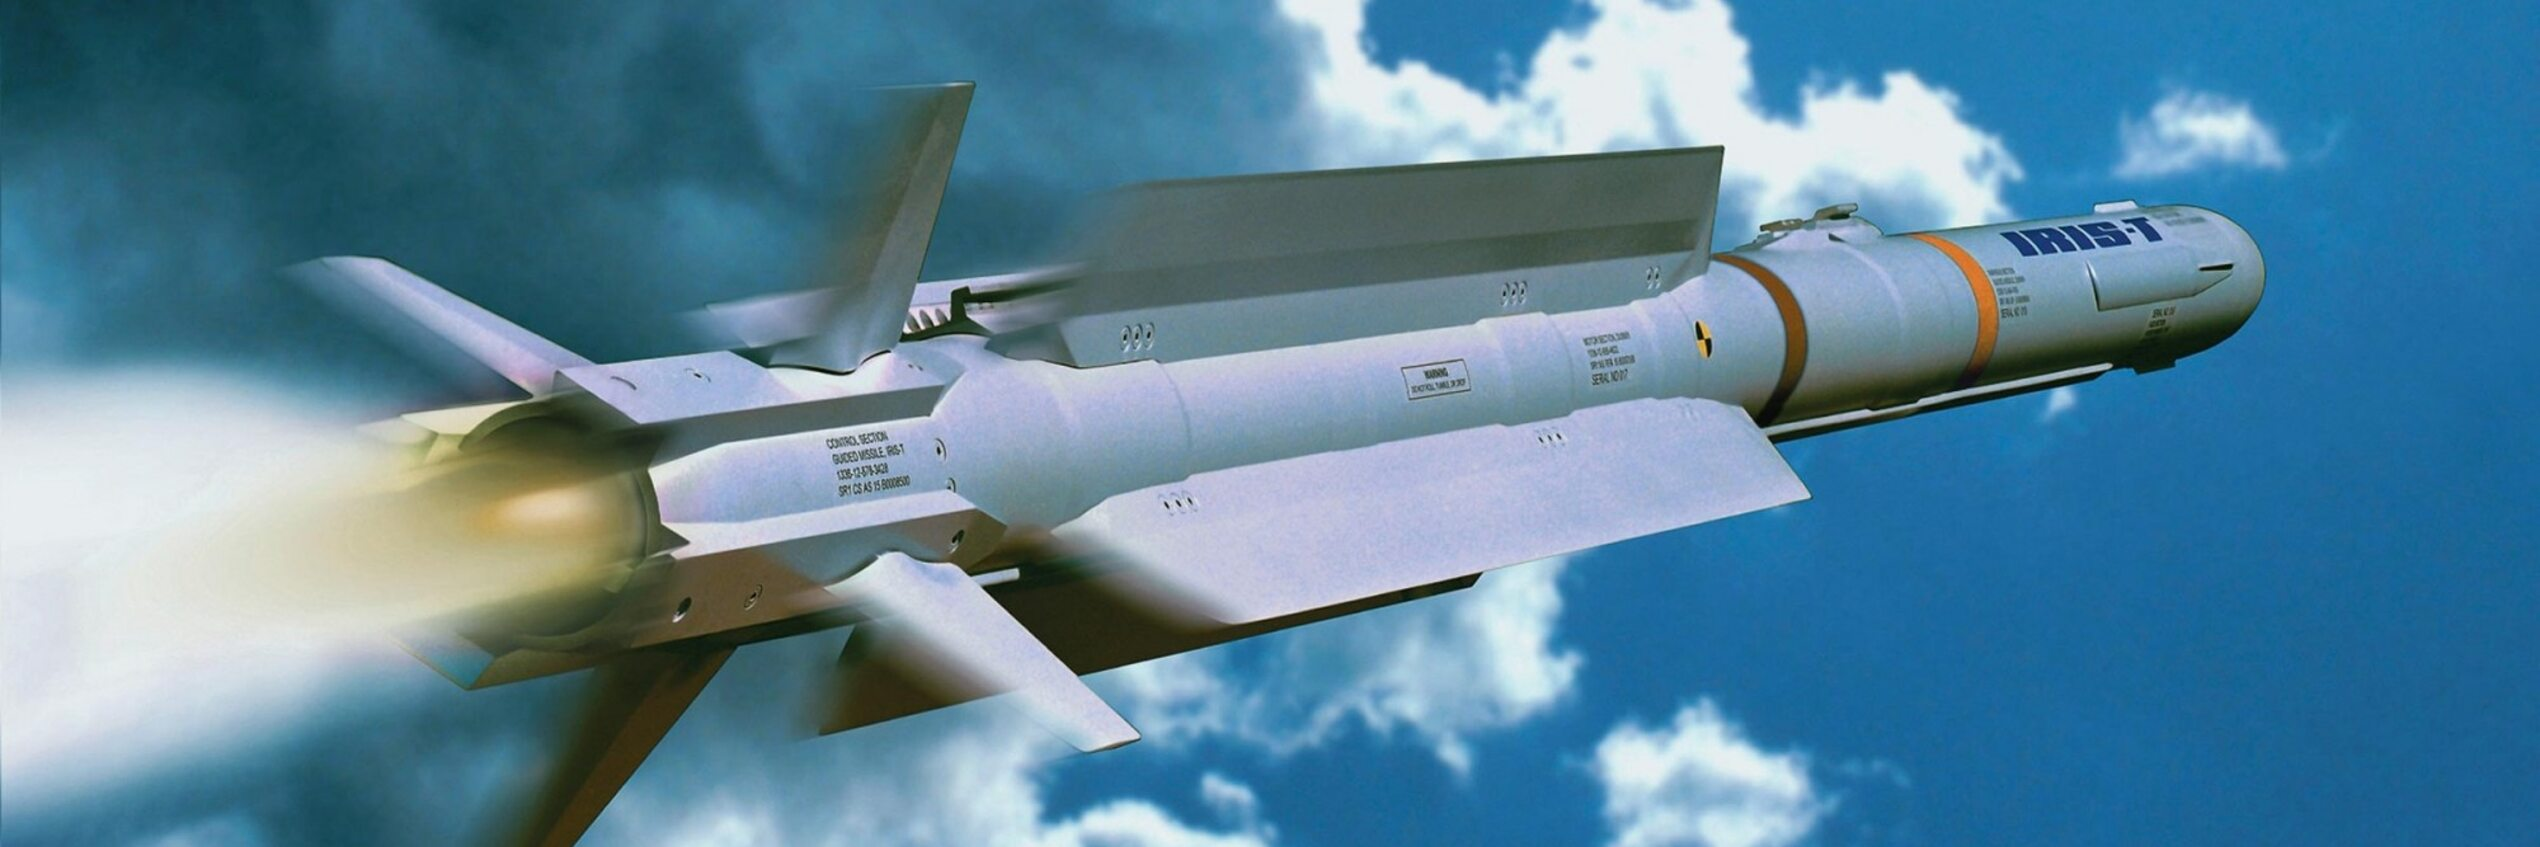 IRIS-T, Air-to-Air Guided Missile